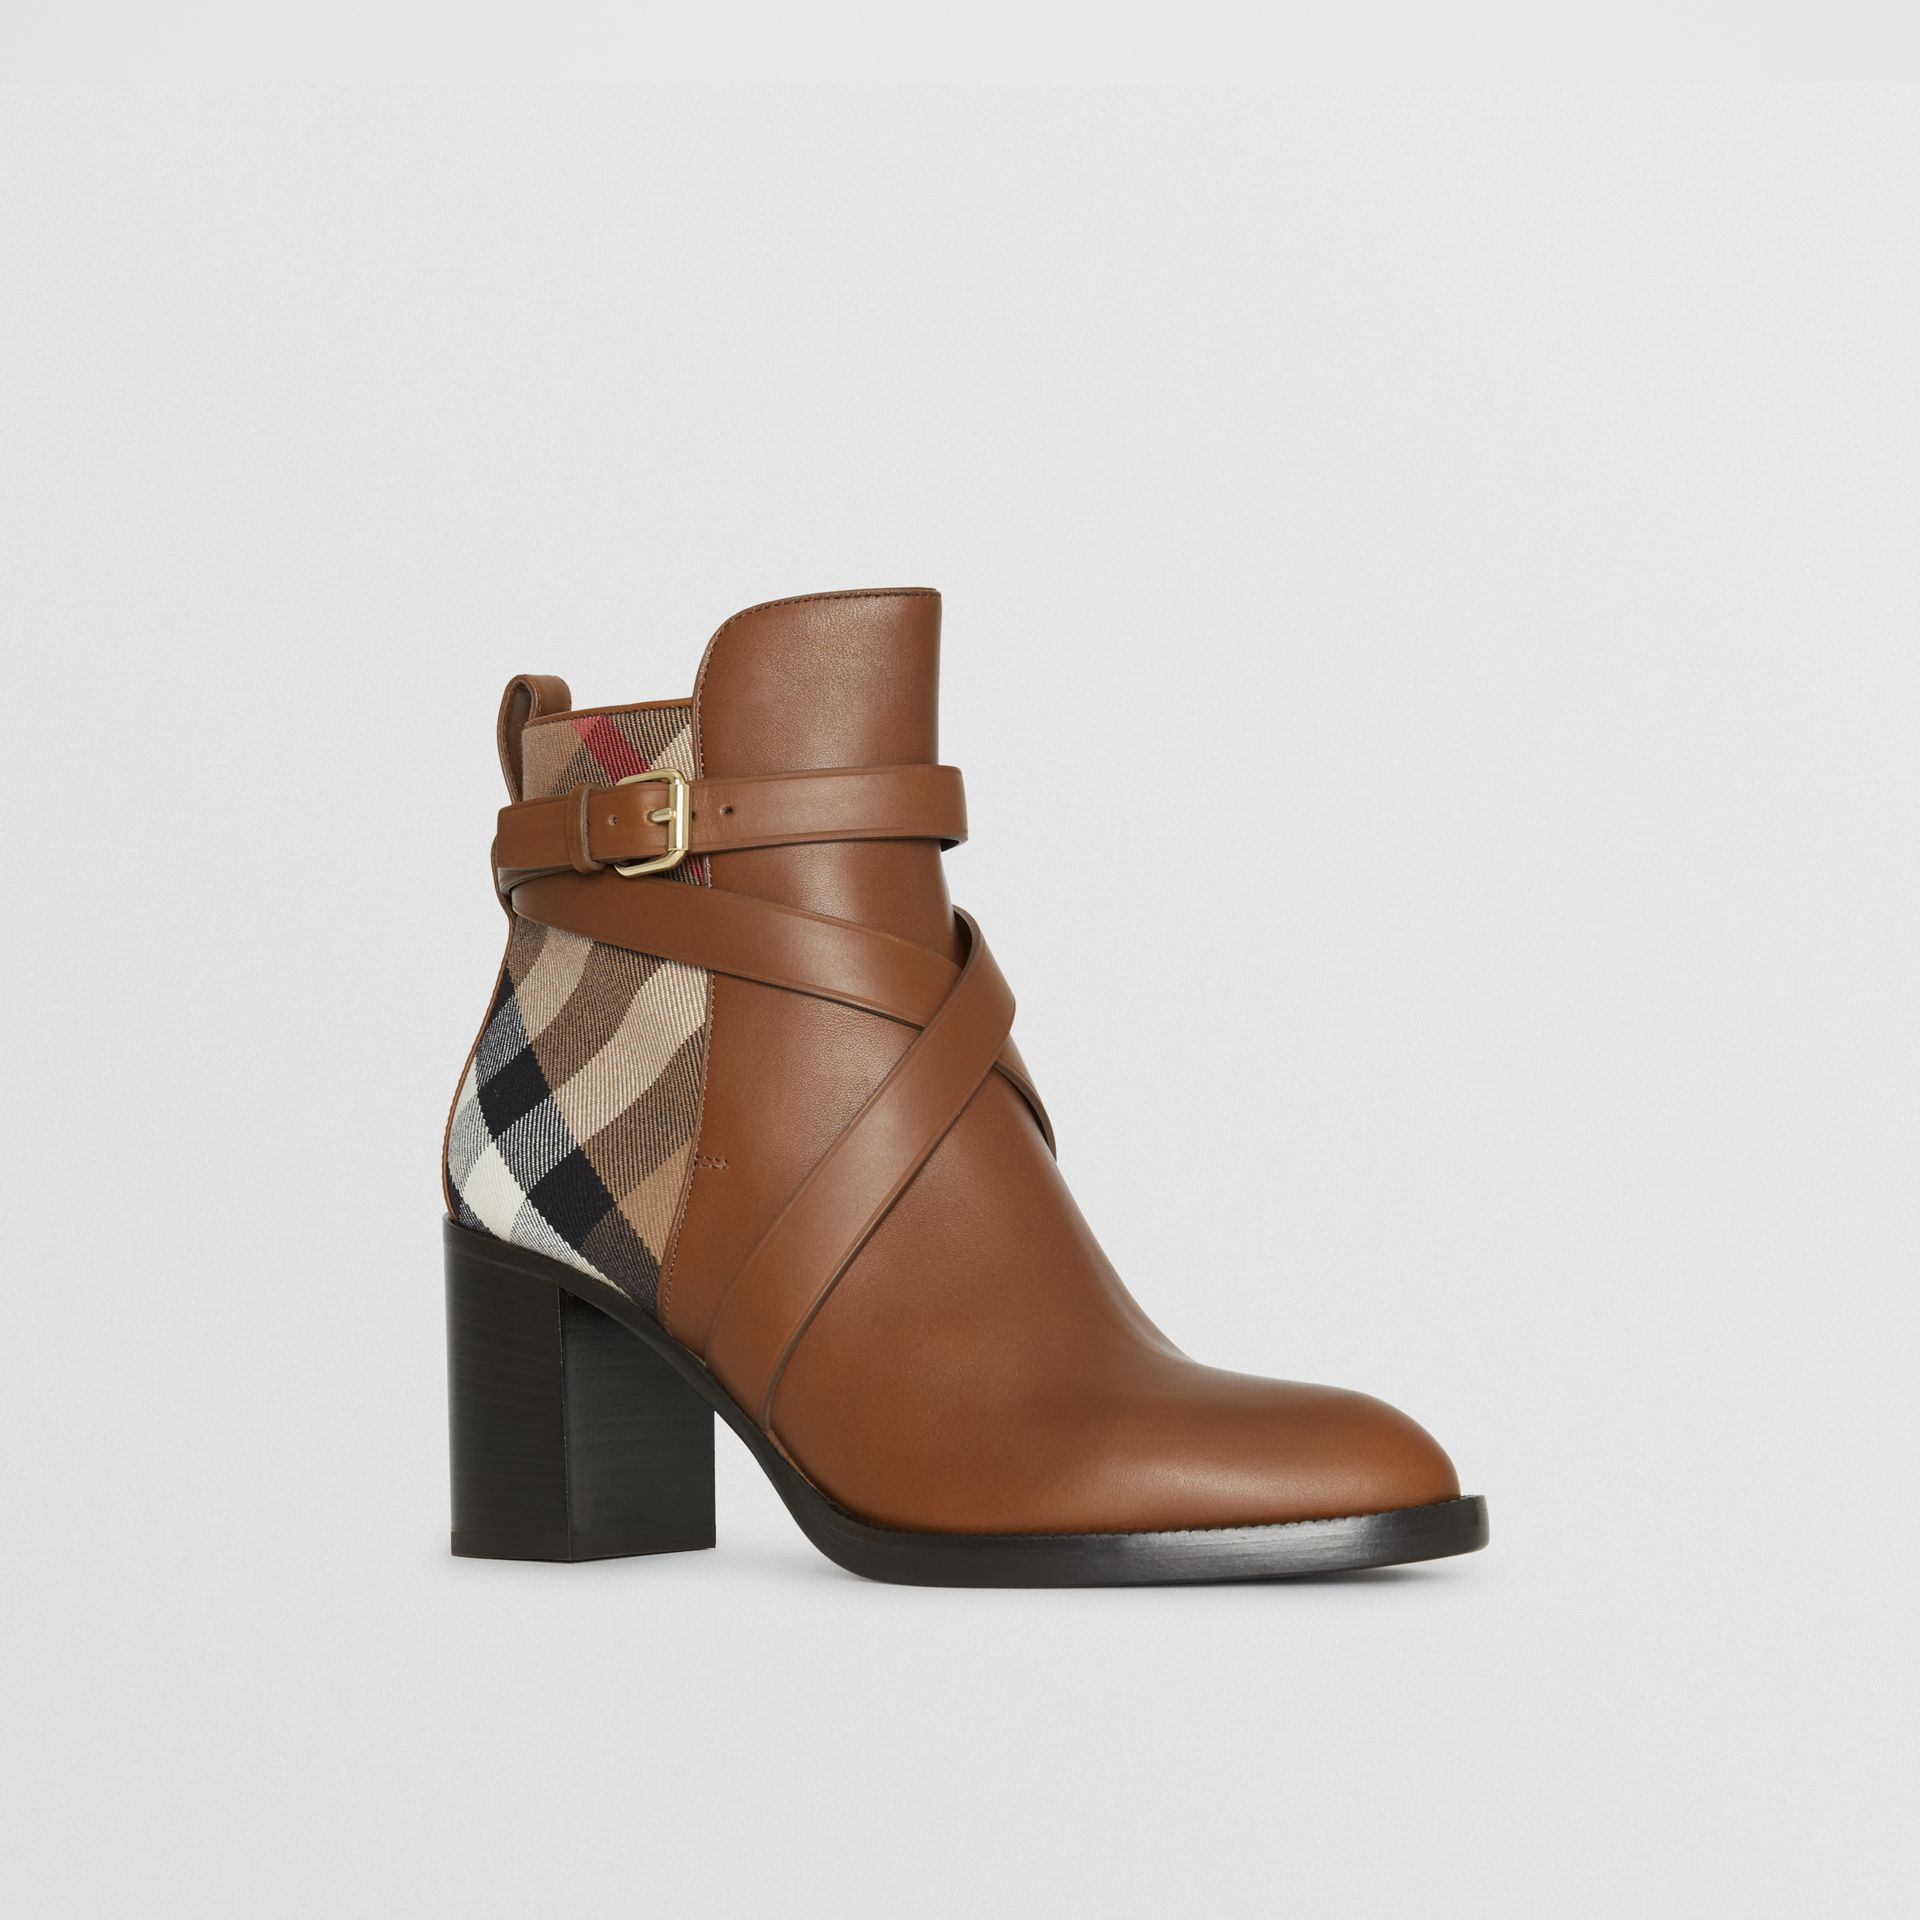 House Check and Leather Ankle Boots in Bright Camel - Women | Burberry United States - gallery image 6